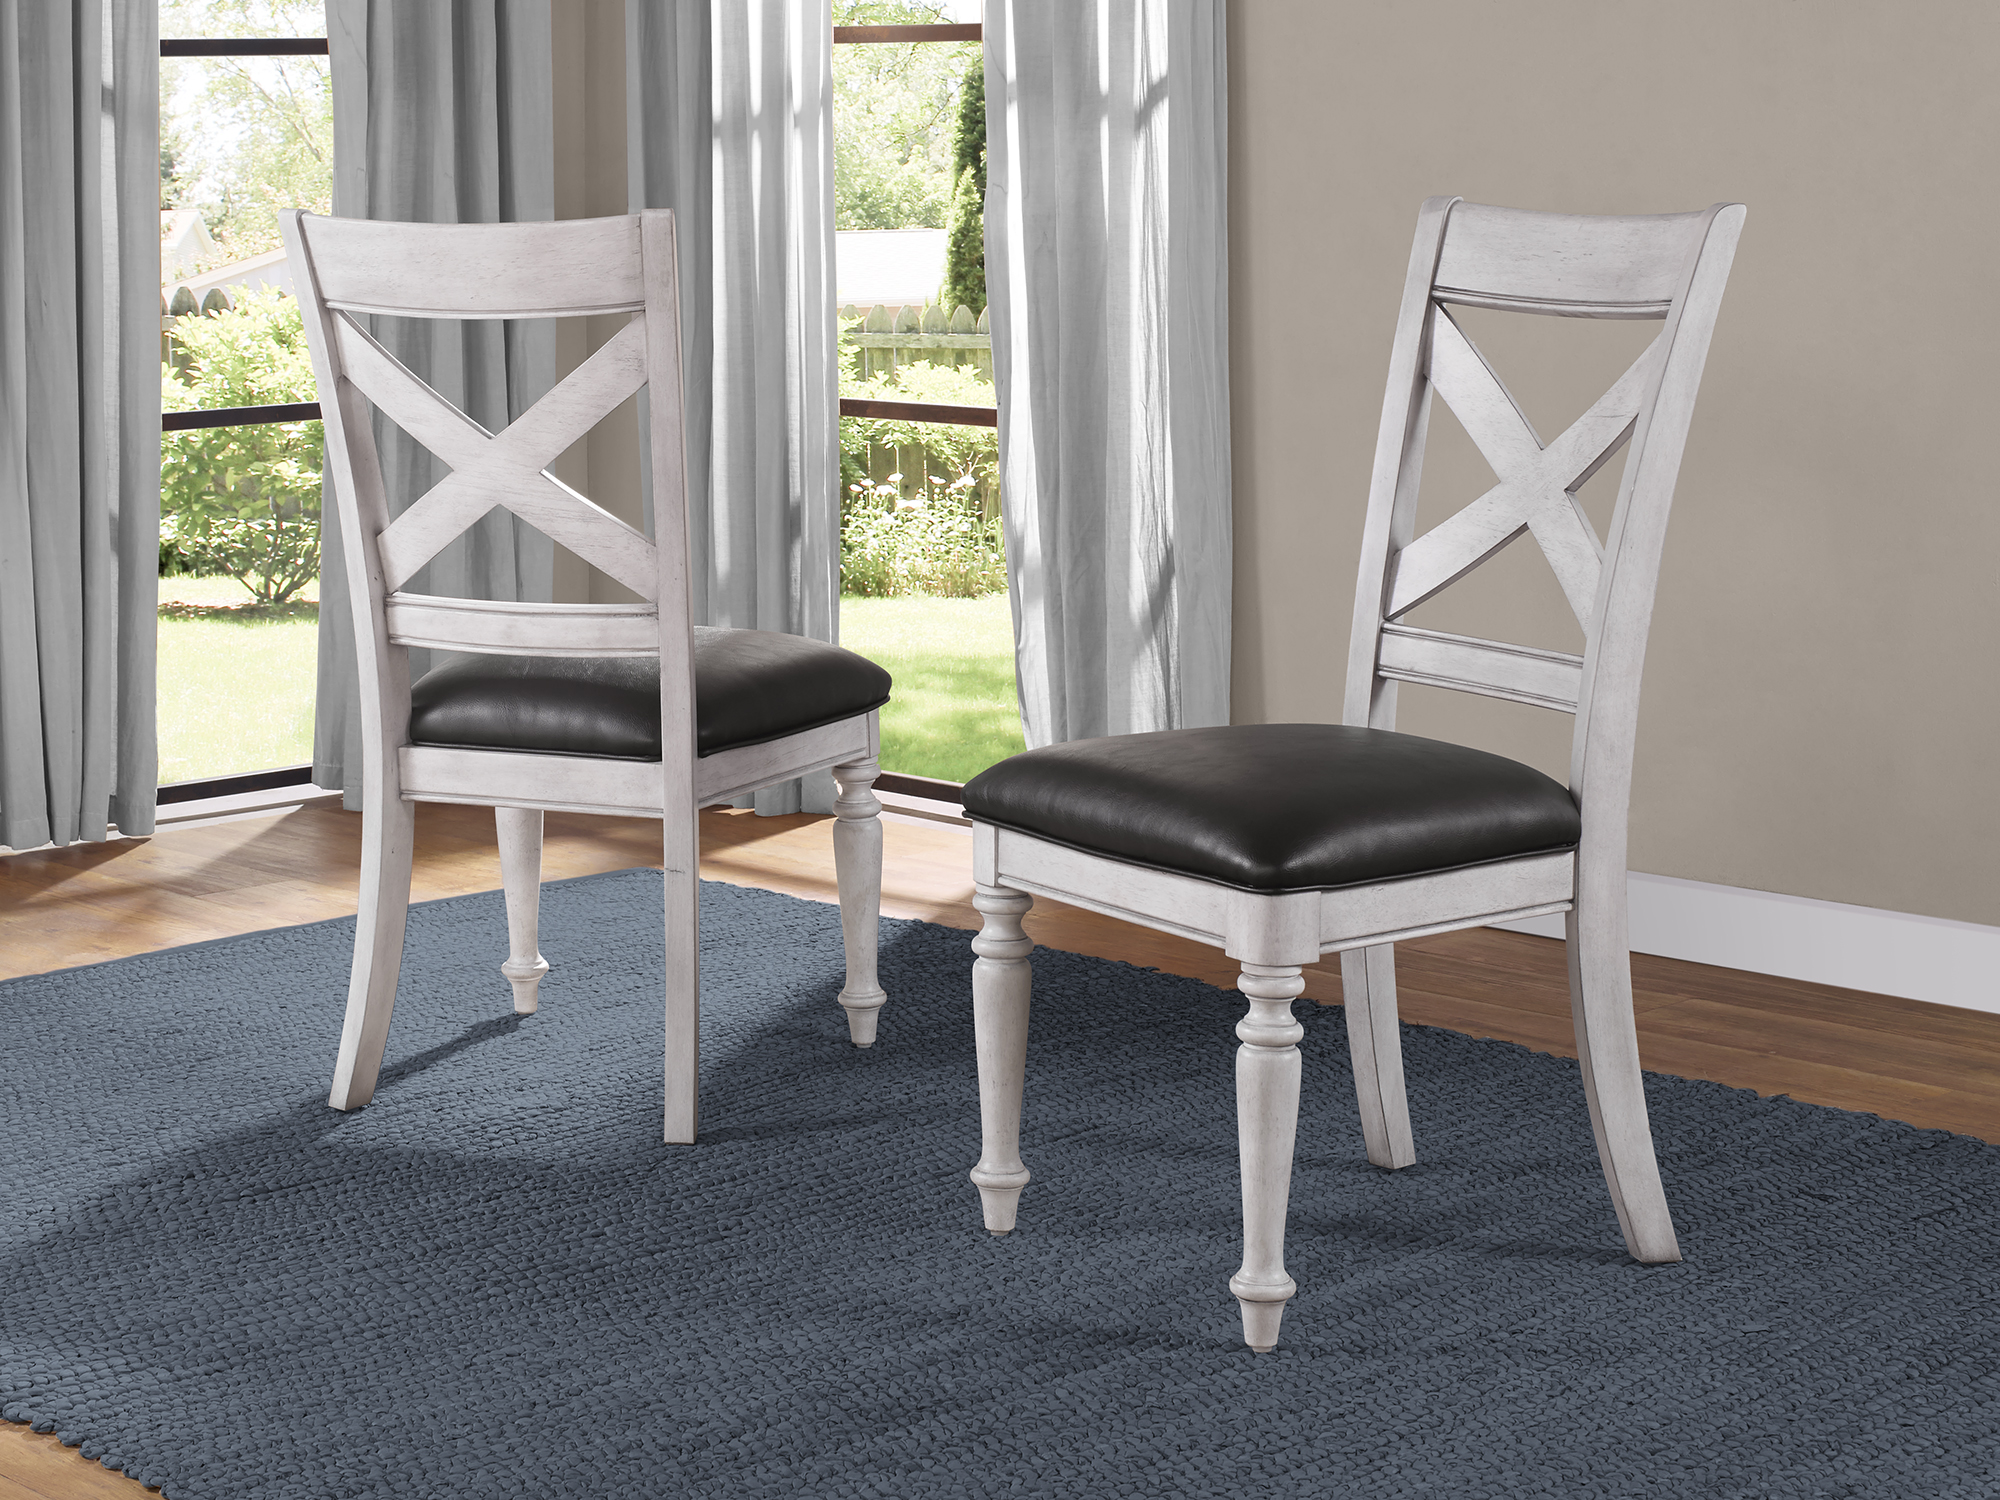 DR2005F17-DTL-2 Chairs.jpg